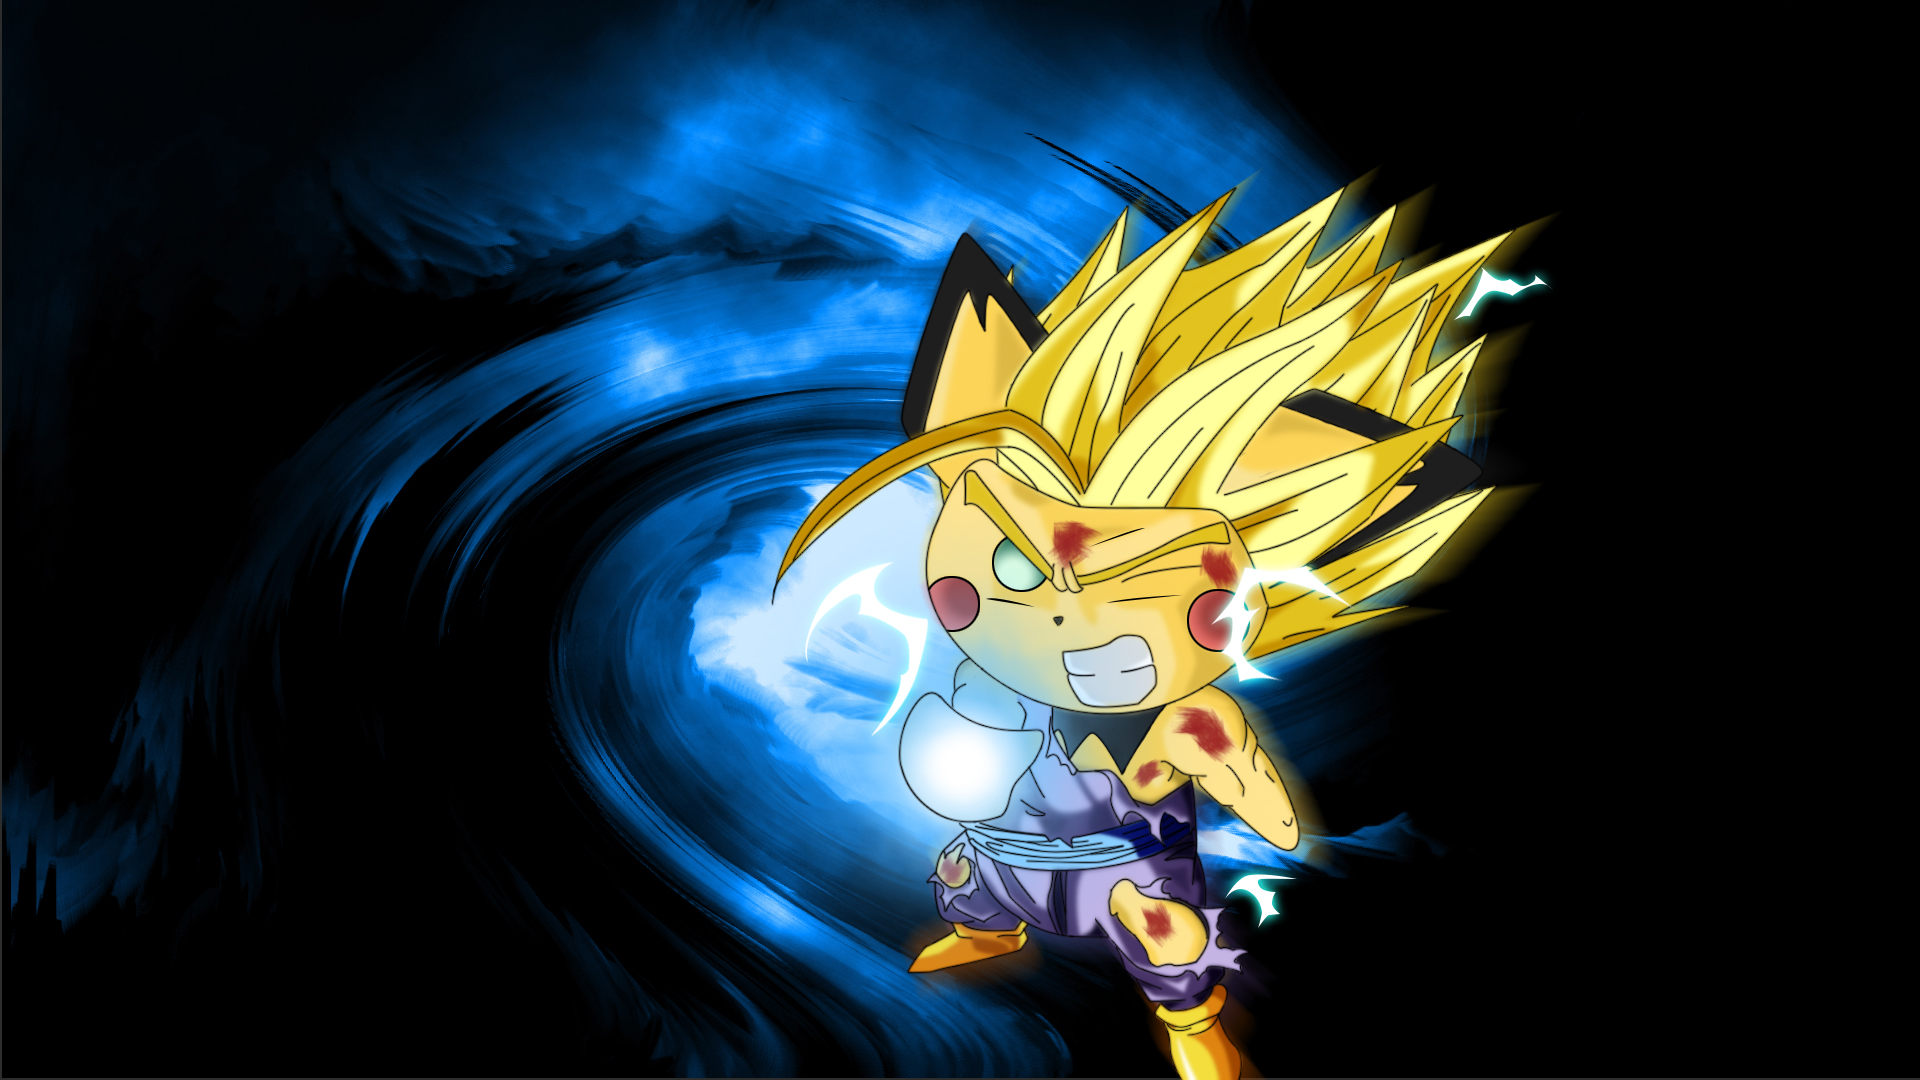 Dragon Ball Z Kamehameha Wallpaper For Android Dragon Ball Z